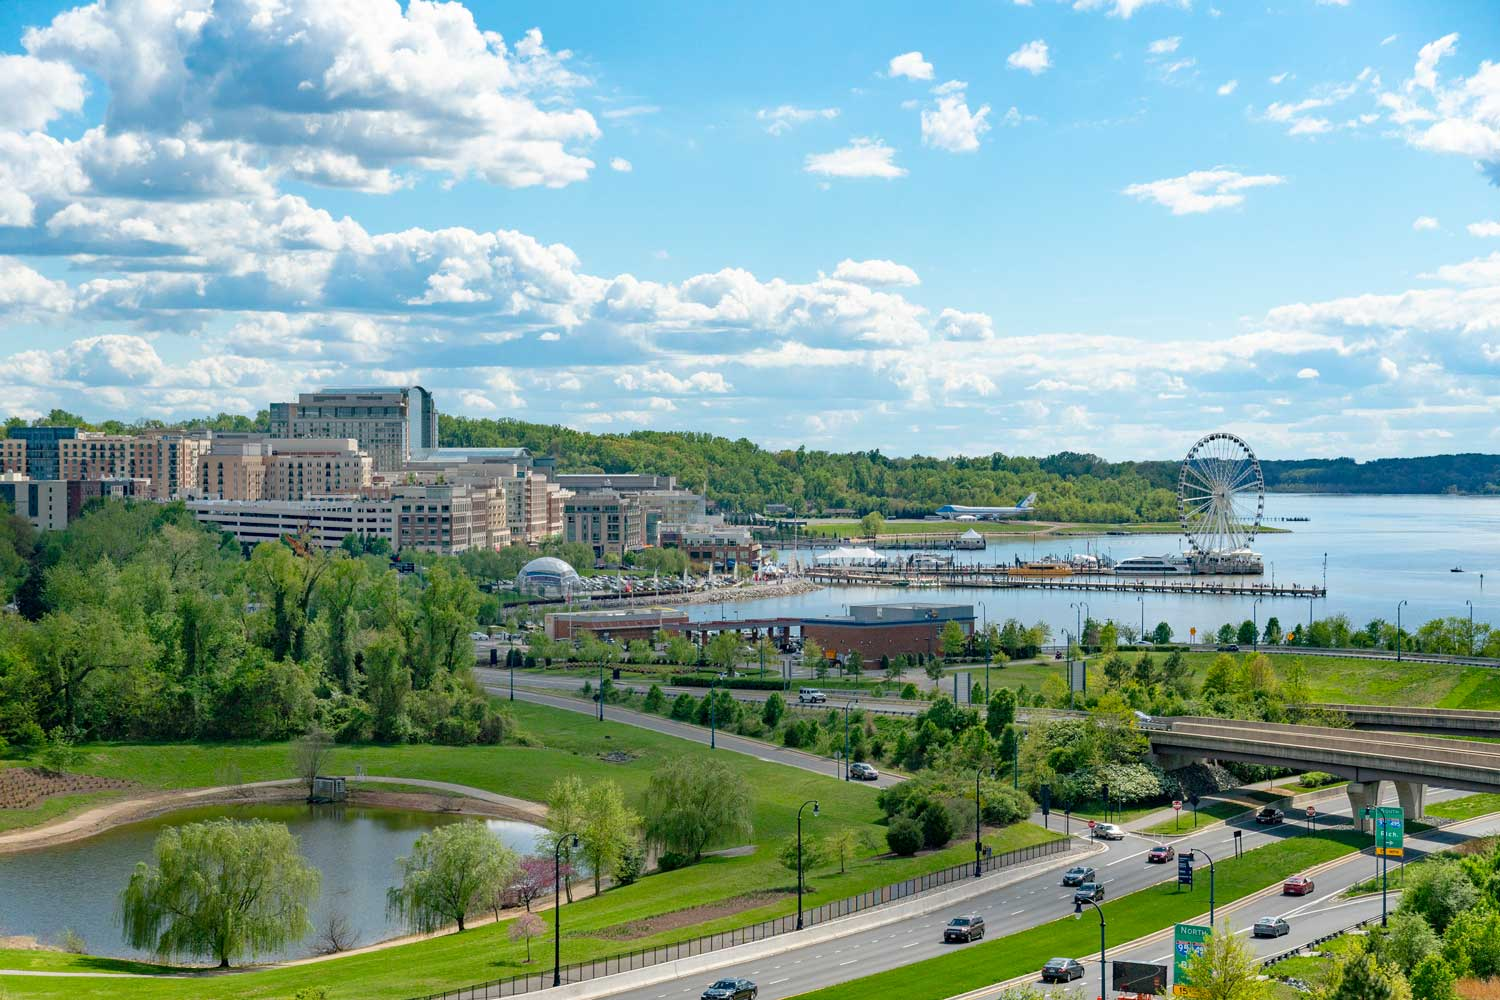 The National Harbor is 15 minutes from Top of the Hill Apartments in Temple Hills, MD